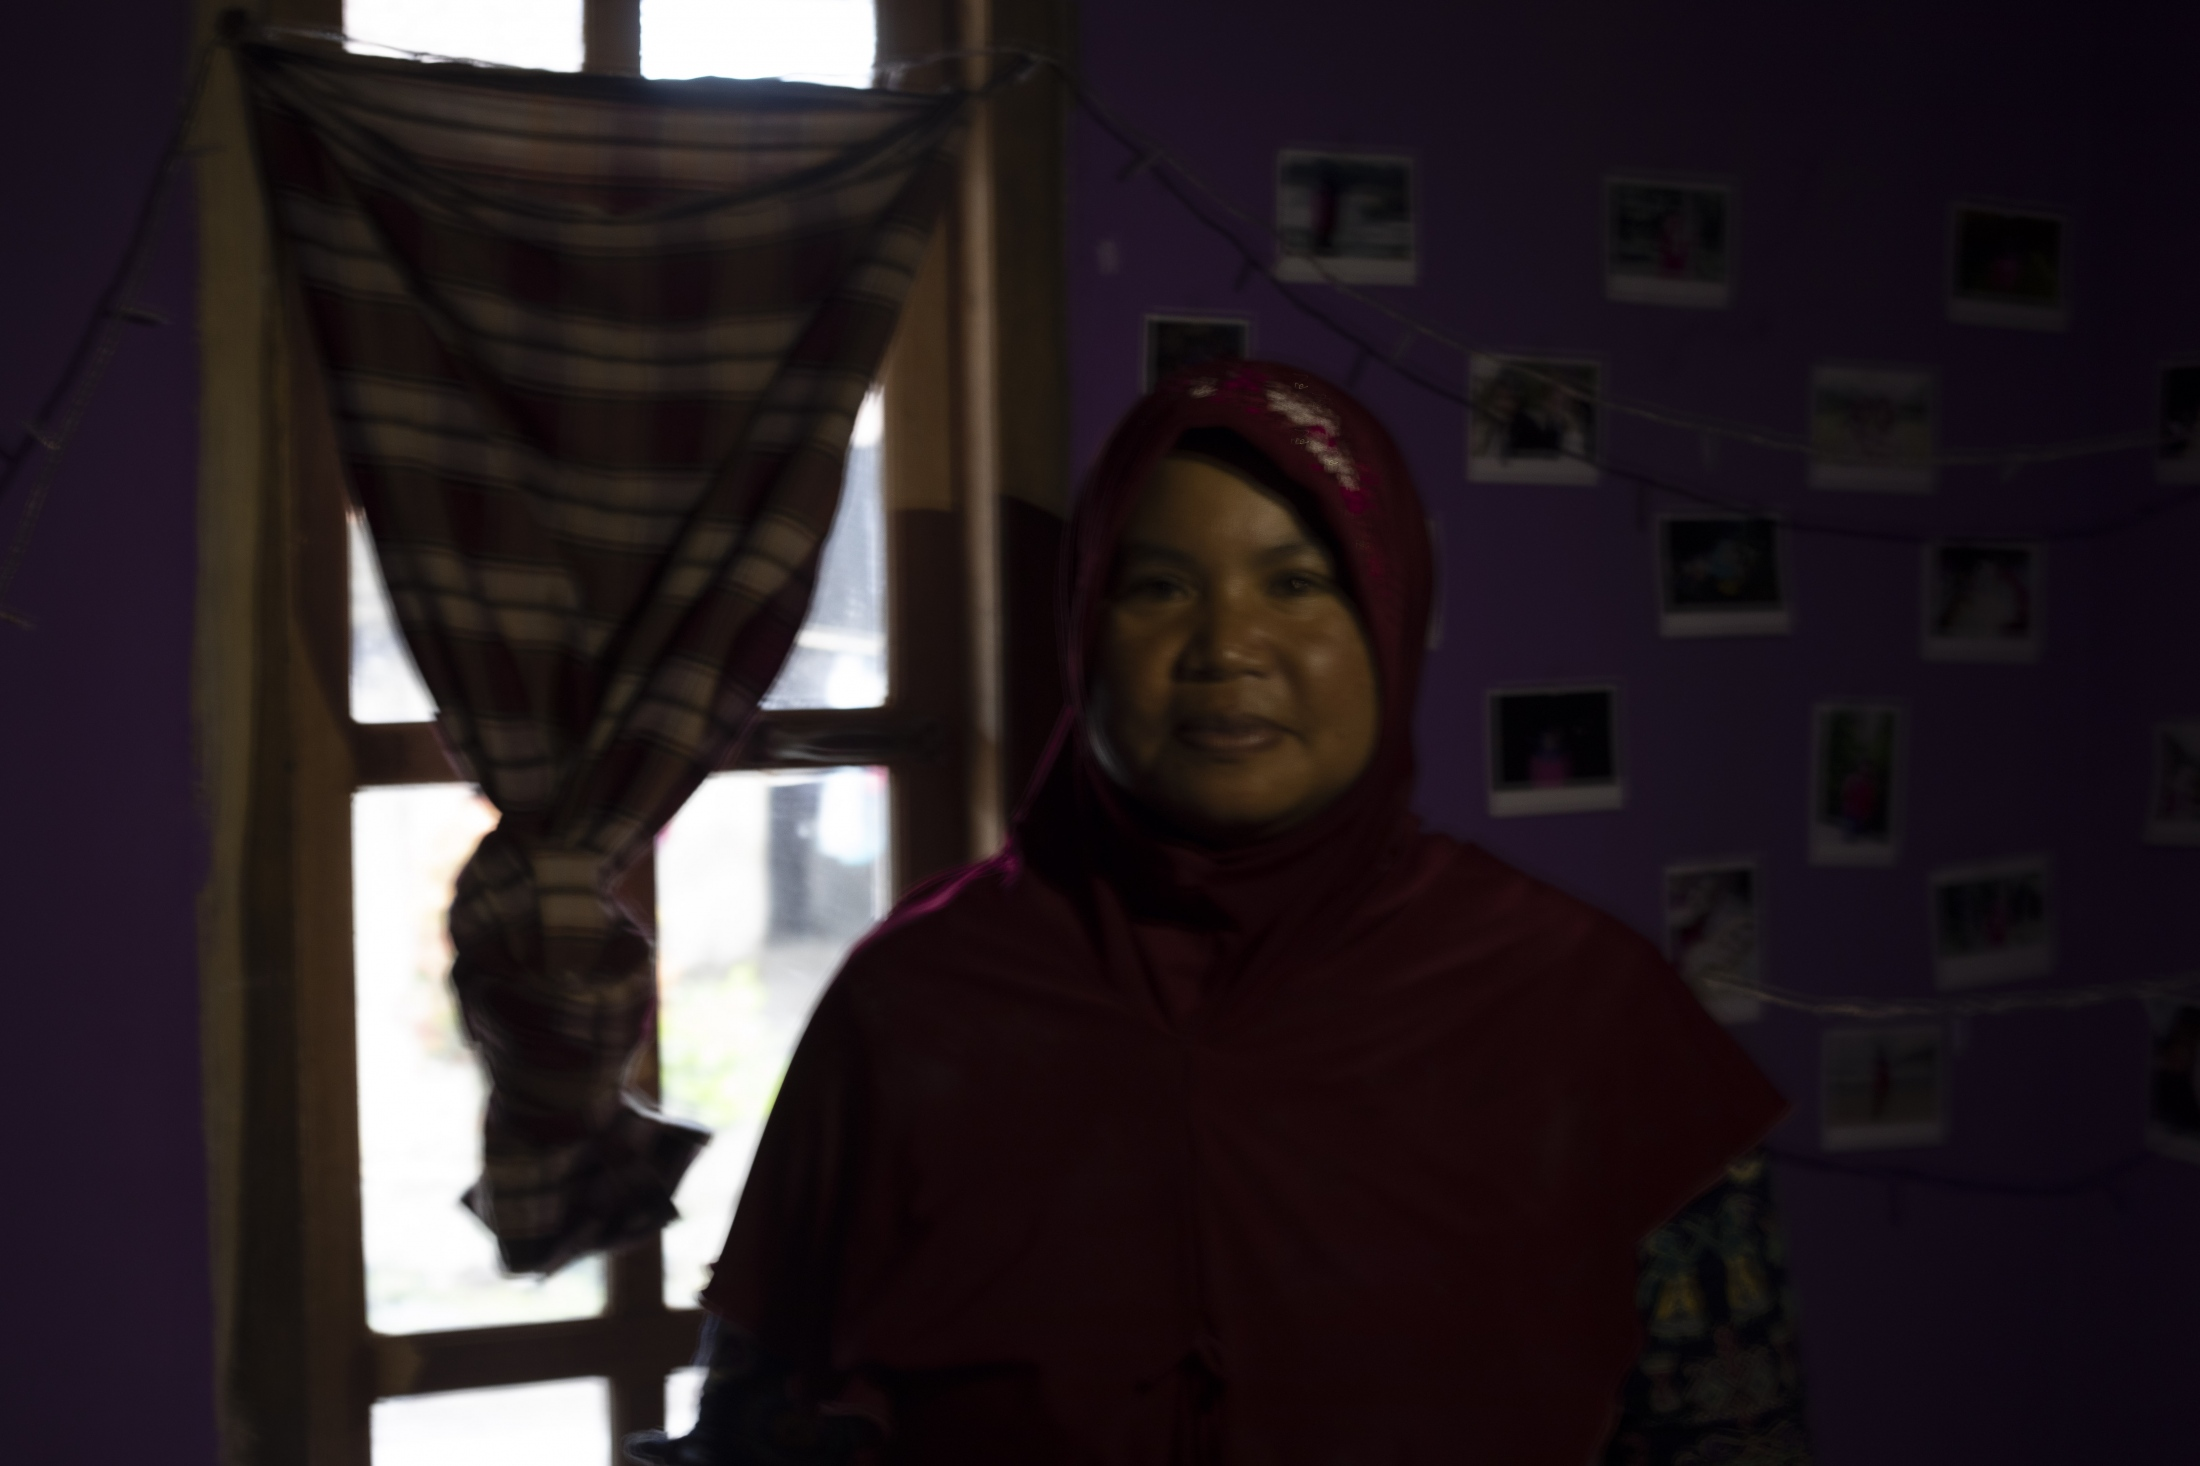 Mbah Srirahayu, 41, portrayed in her new home in the village of Karang Kendal. She lost her brother, sister, and niece in the devastating volcanic eruption in 2010 (that killed 353 people). Survivors like her - in total about 80 families - that previously lived in Palemsari were relocated here in past years. She greatly respects the mountain and like believes that respecting the spirits, taking care of the environment, and of people are the only way to be free from fear of living close to it.